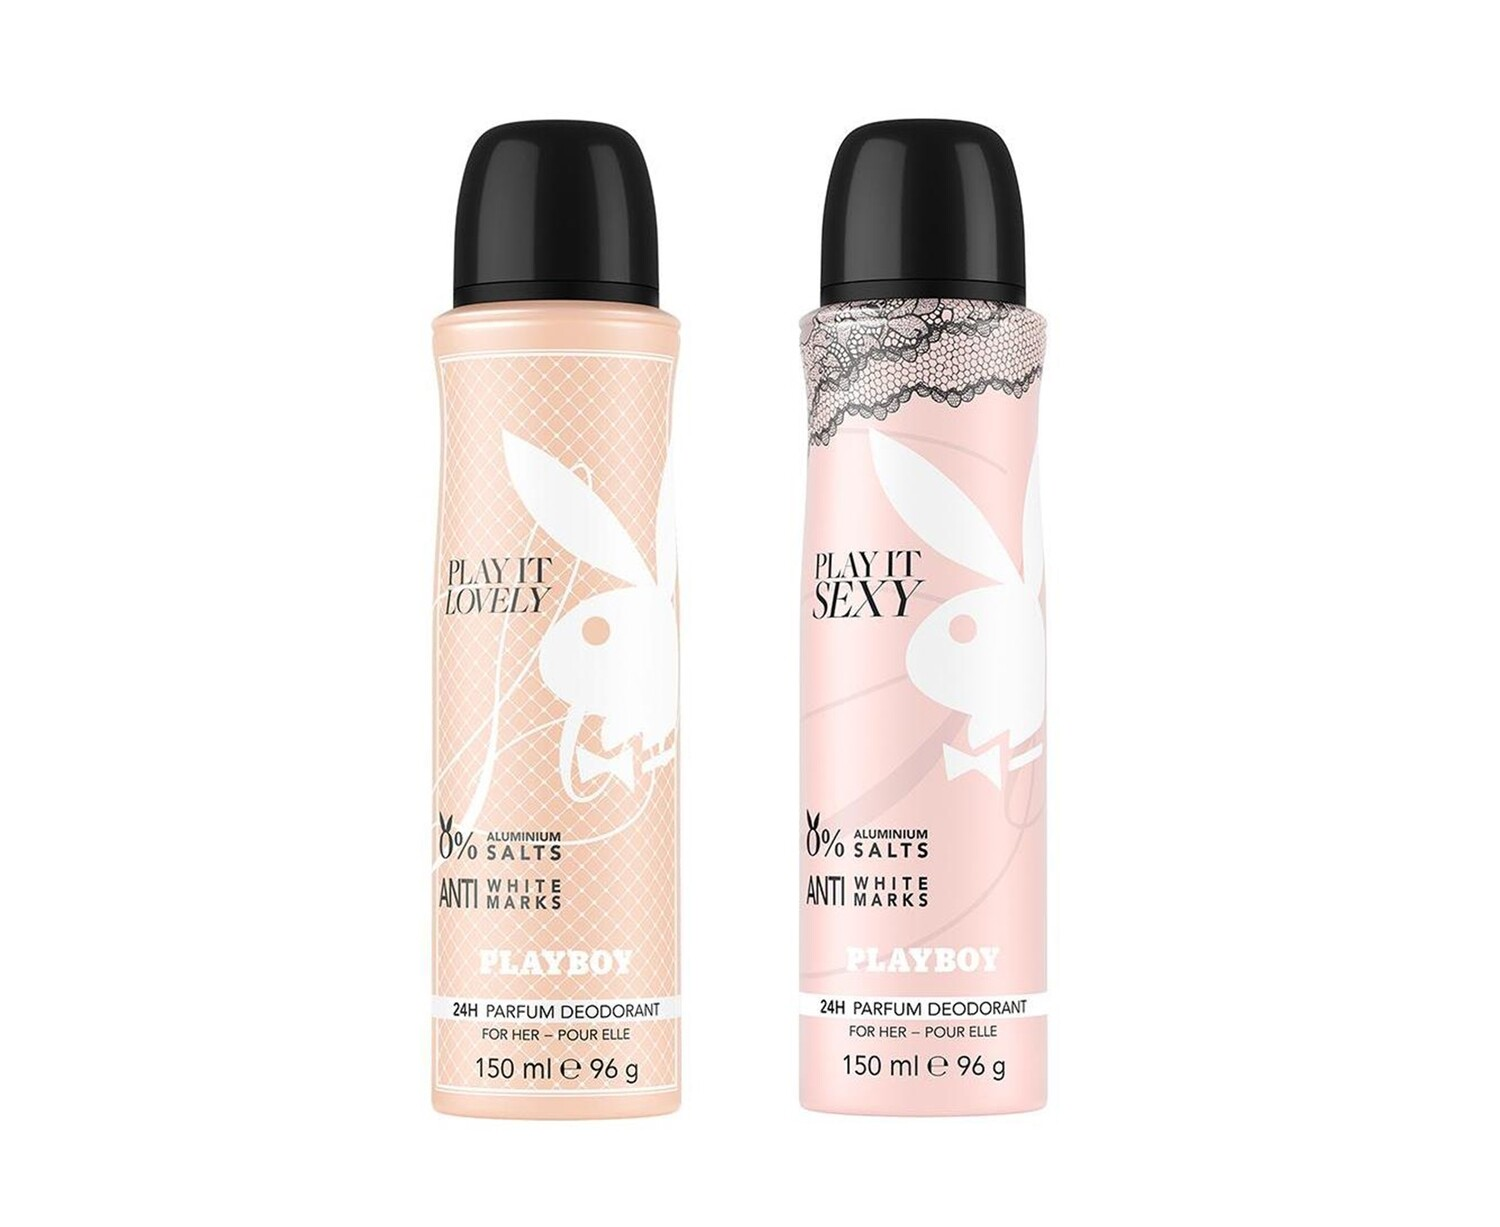 Playboy Lovely + Sexy Deo New Combo Set Pack of 2 Men